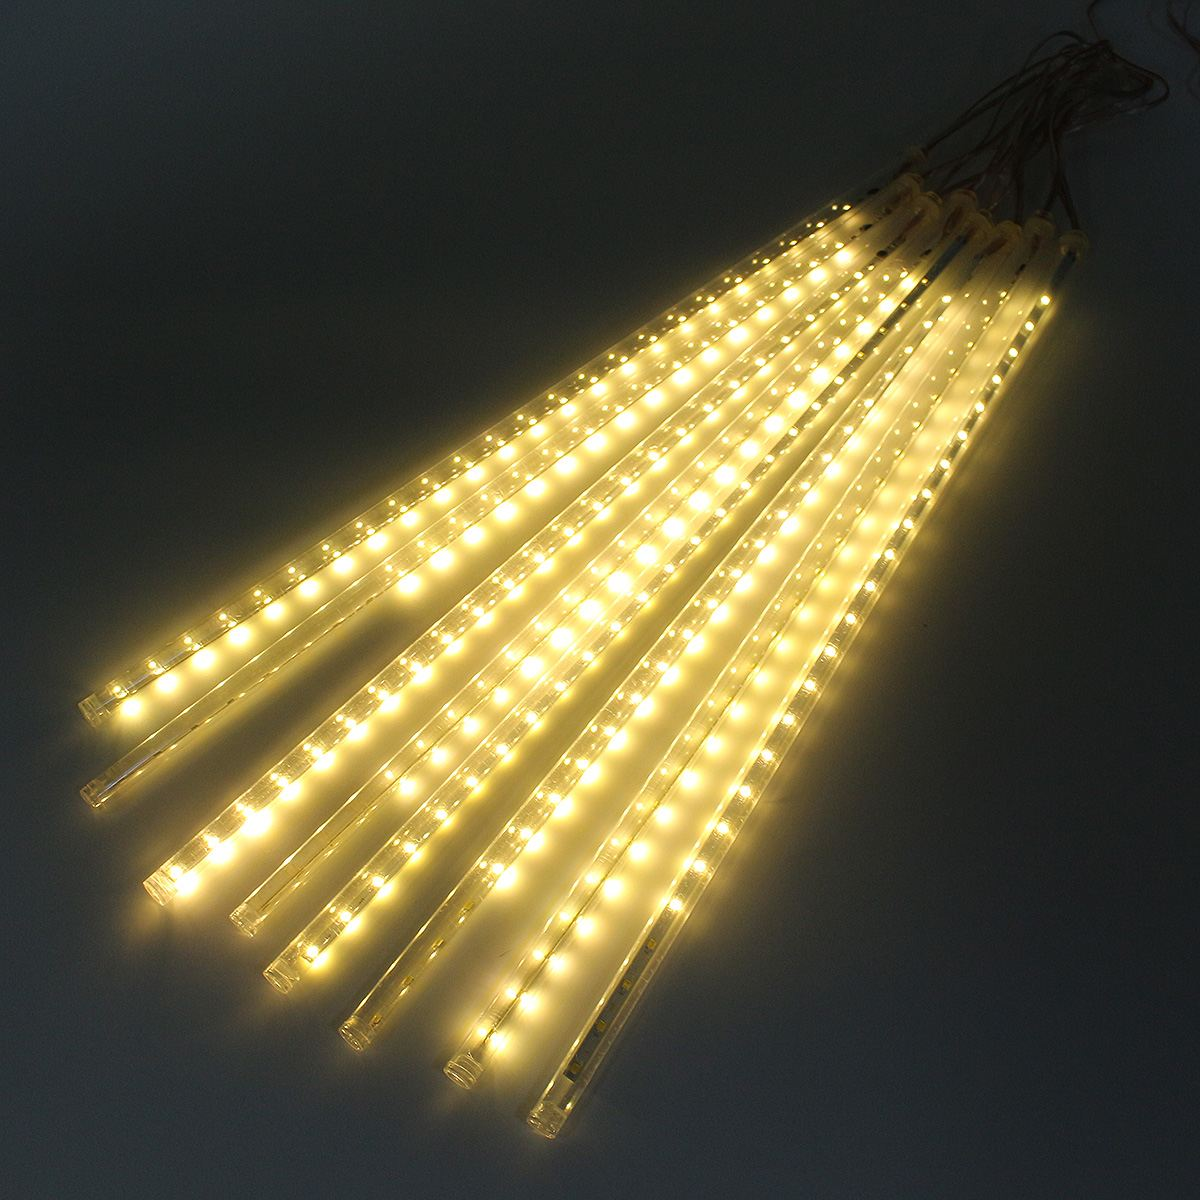 8 Tube Meteor Shower Rain Light 50CM 30 LED Strip Light Waterproof LED String Light Warm White EU Plug AC 220V